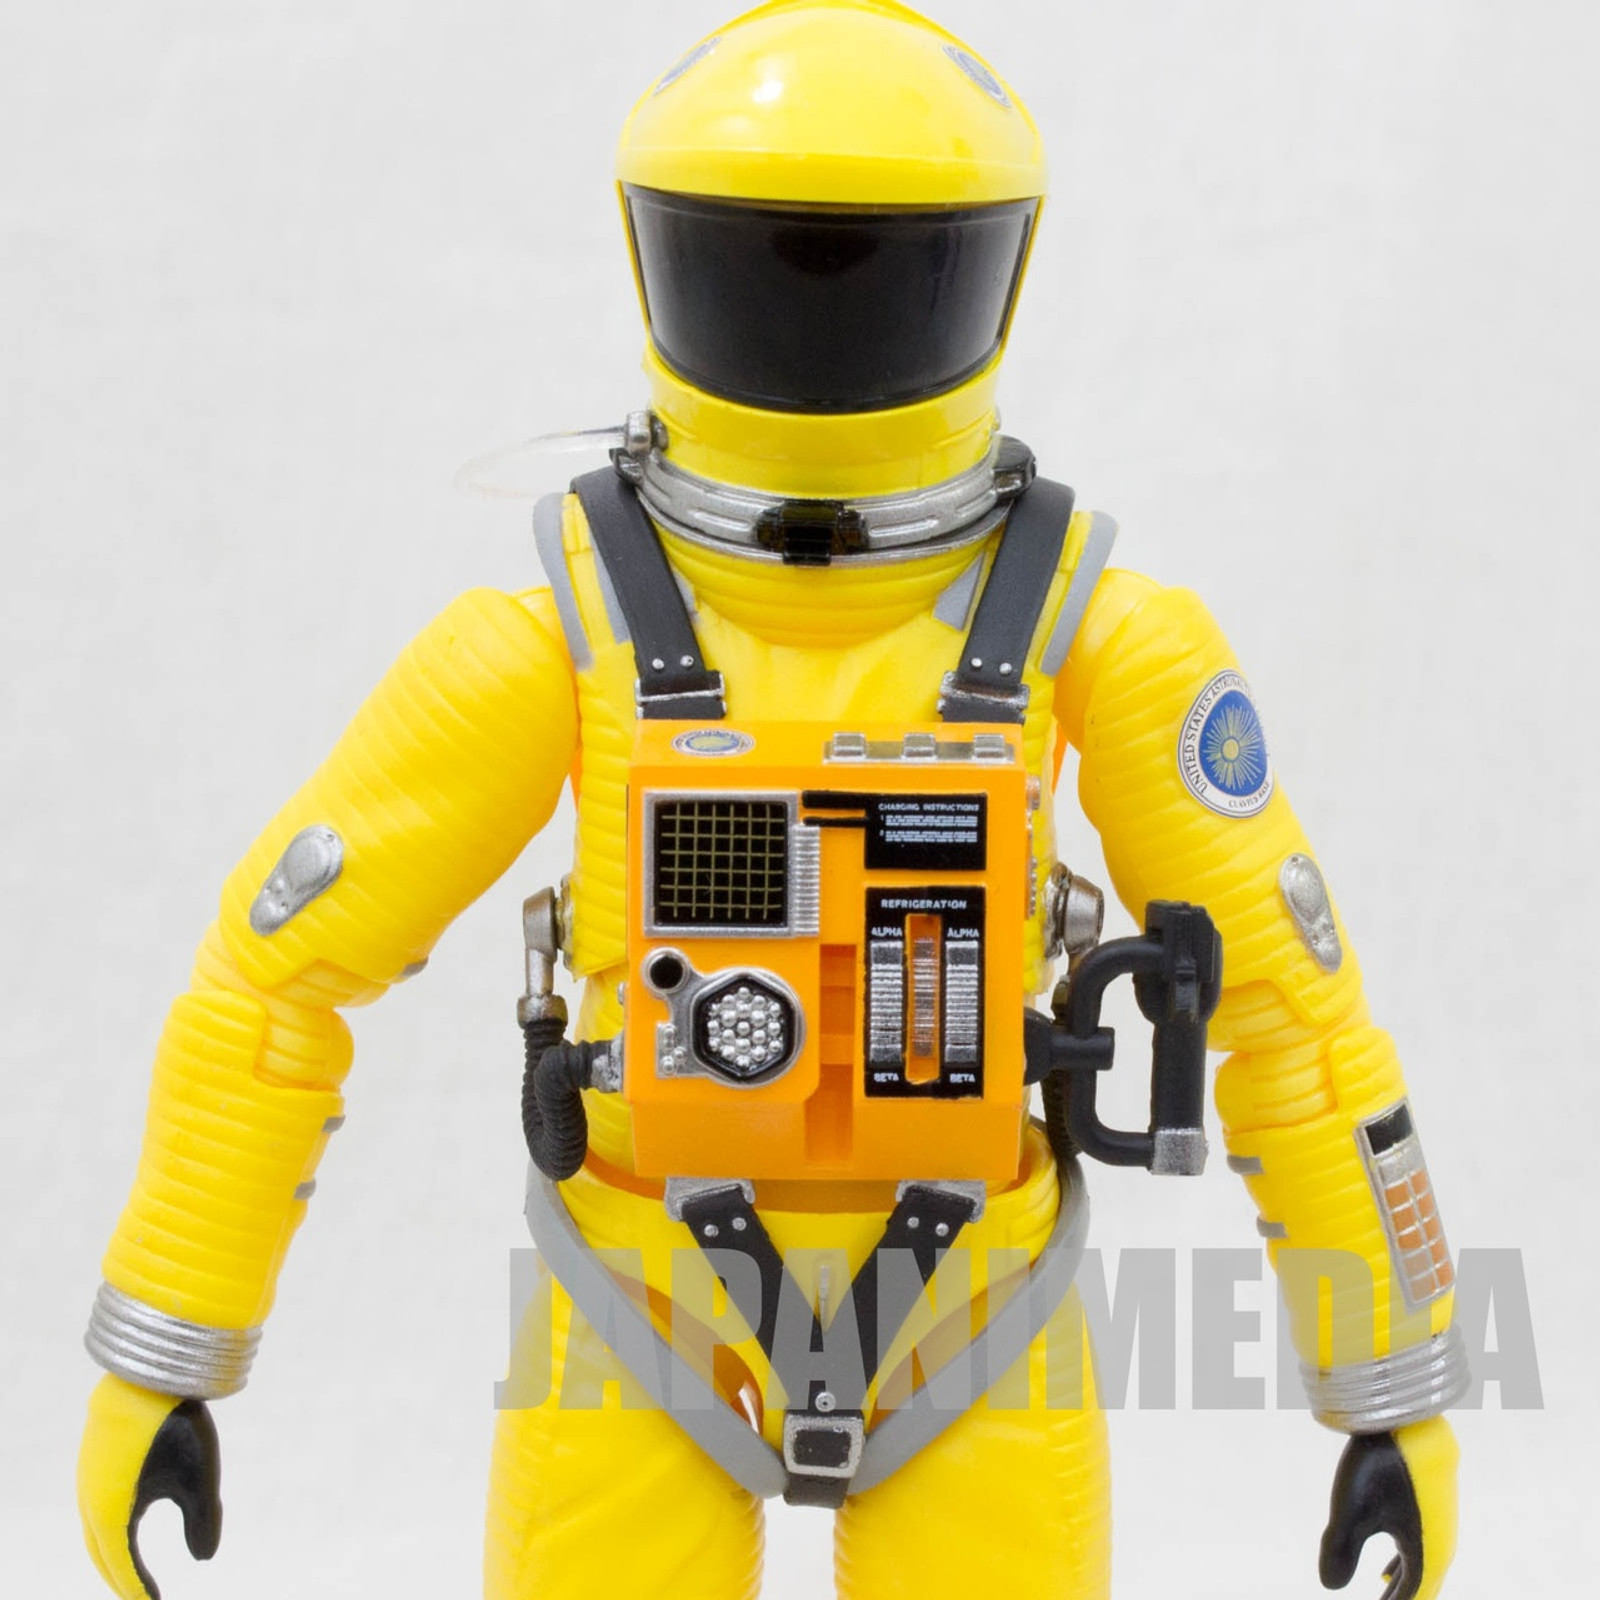 2001 A Space Odyssey Action Figure Space Suit Yellow Ver. Medicom MAFEX 035